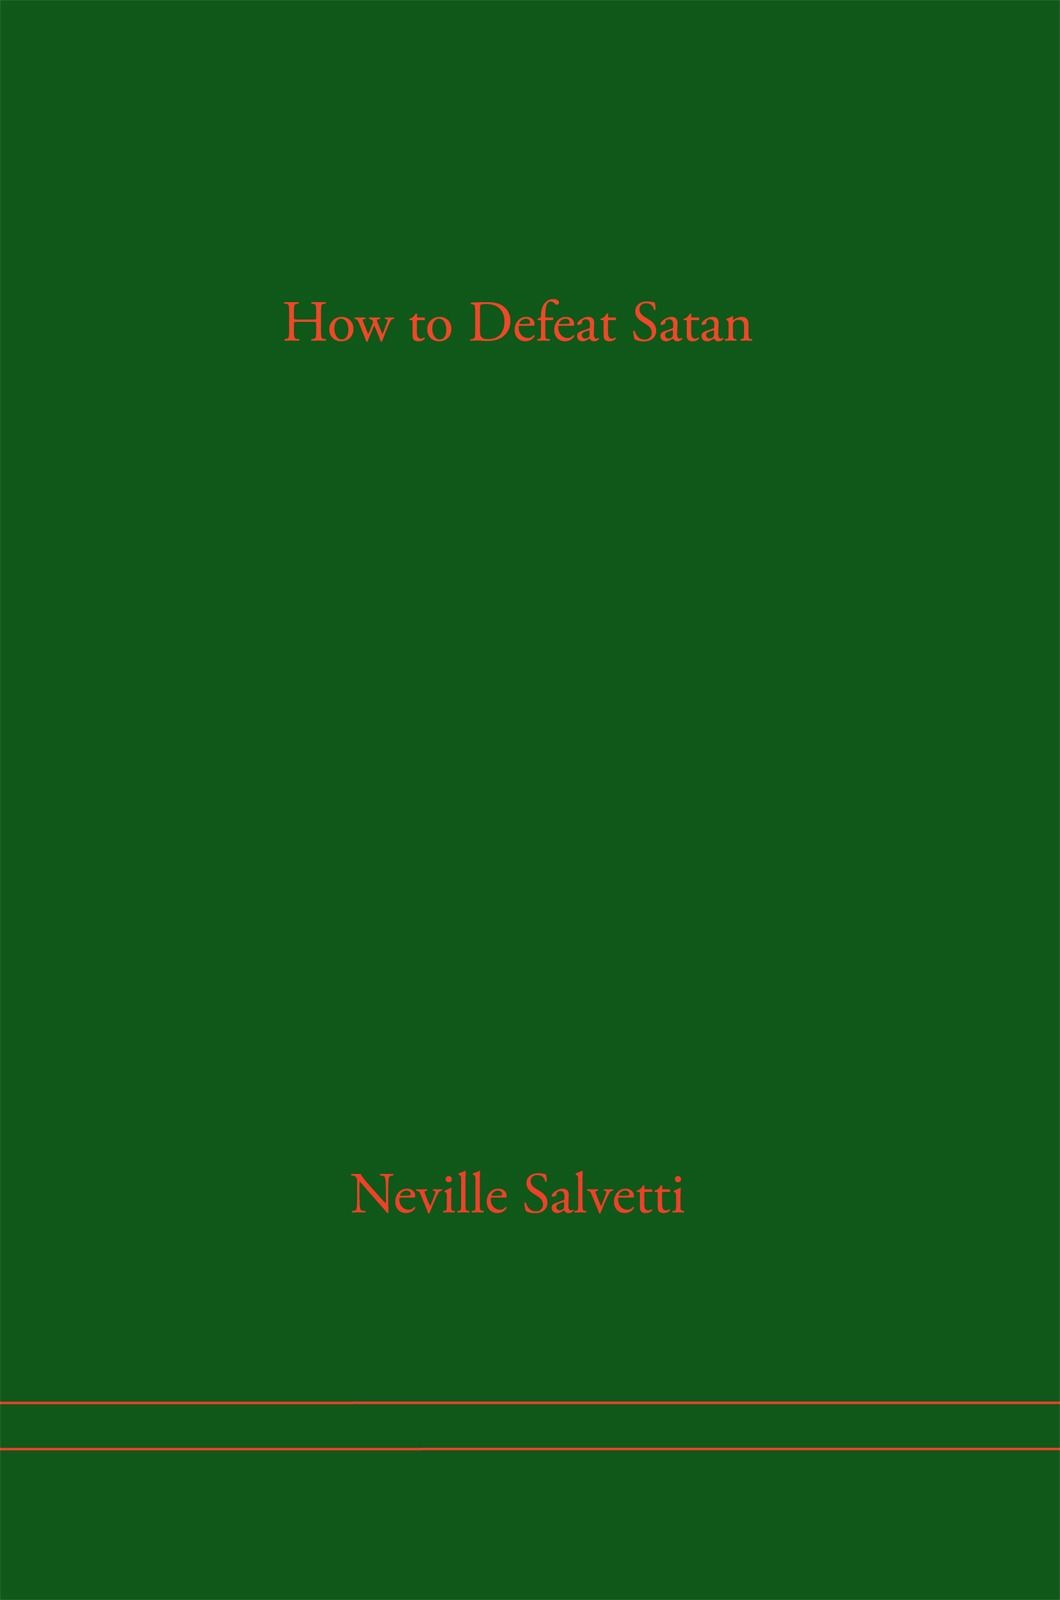 How to Defeat Satan